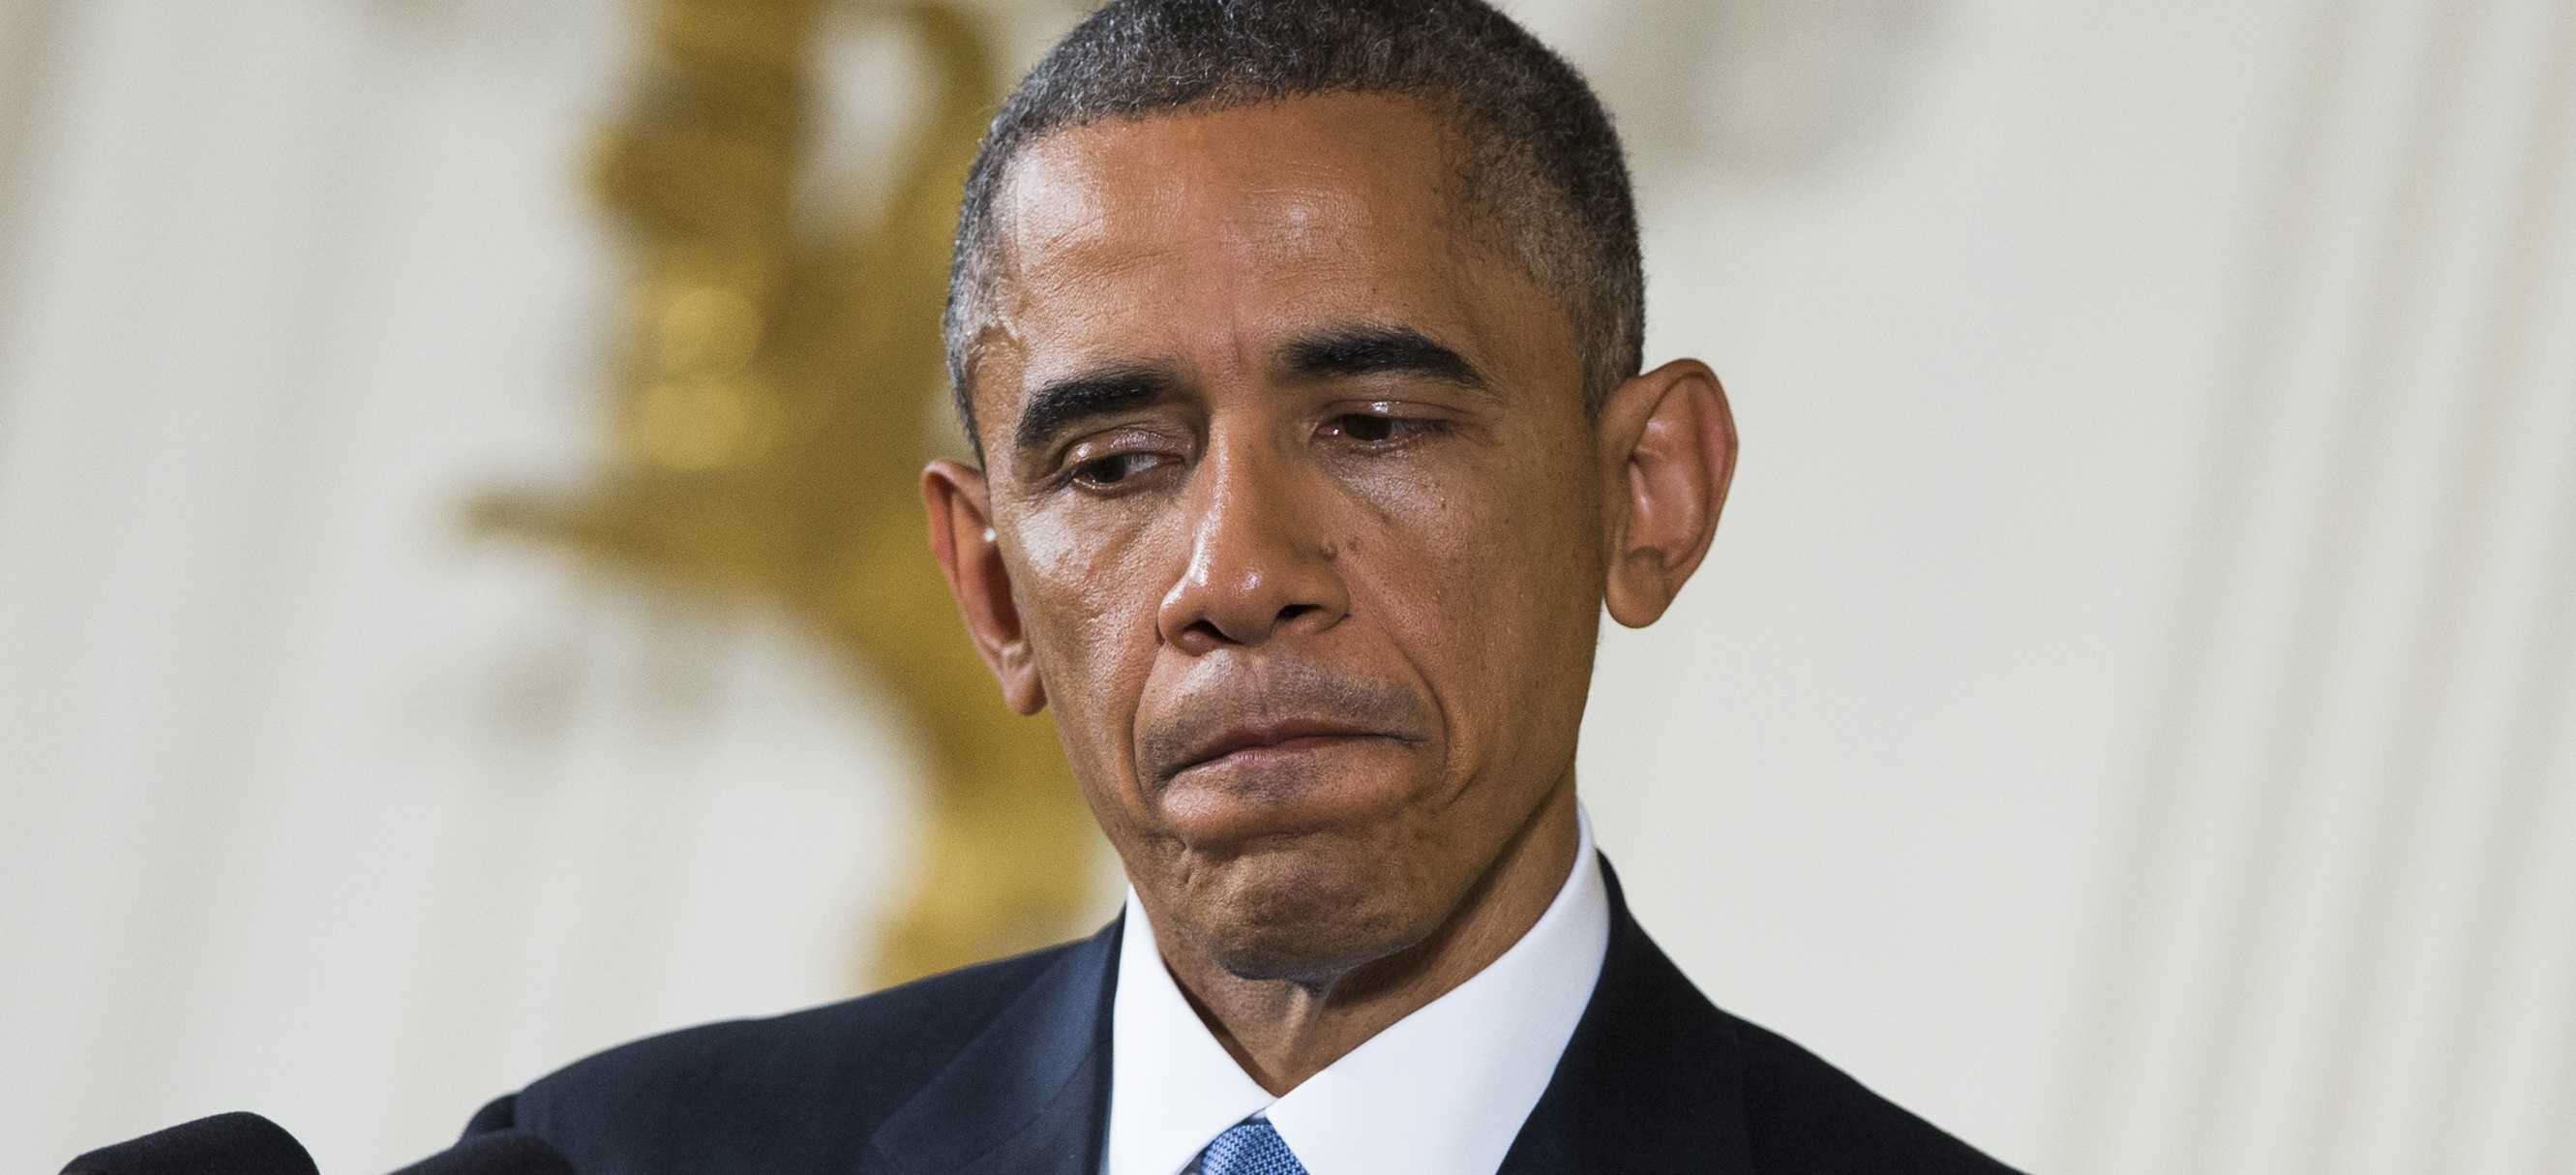 President Barack Obama speaks after the elections. Due to harsh Democrat losses, some wonder if he'll rely on executive powers for policymaking in his final years. (Evan Vucci | AP)